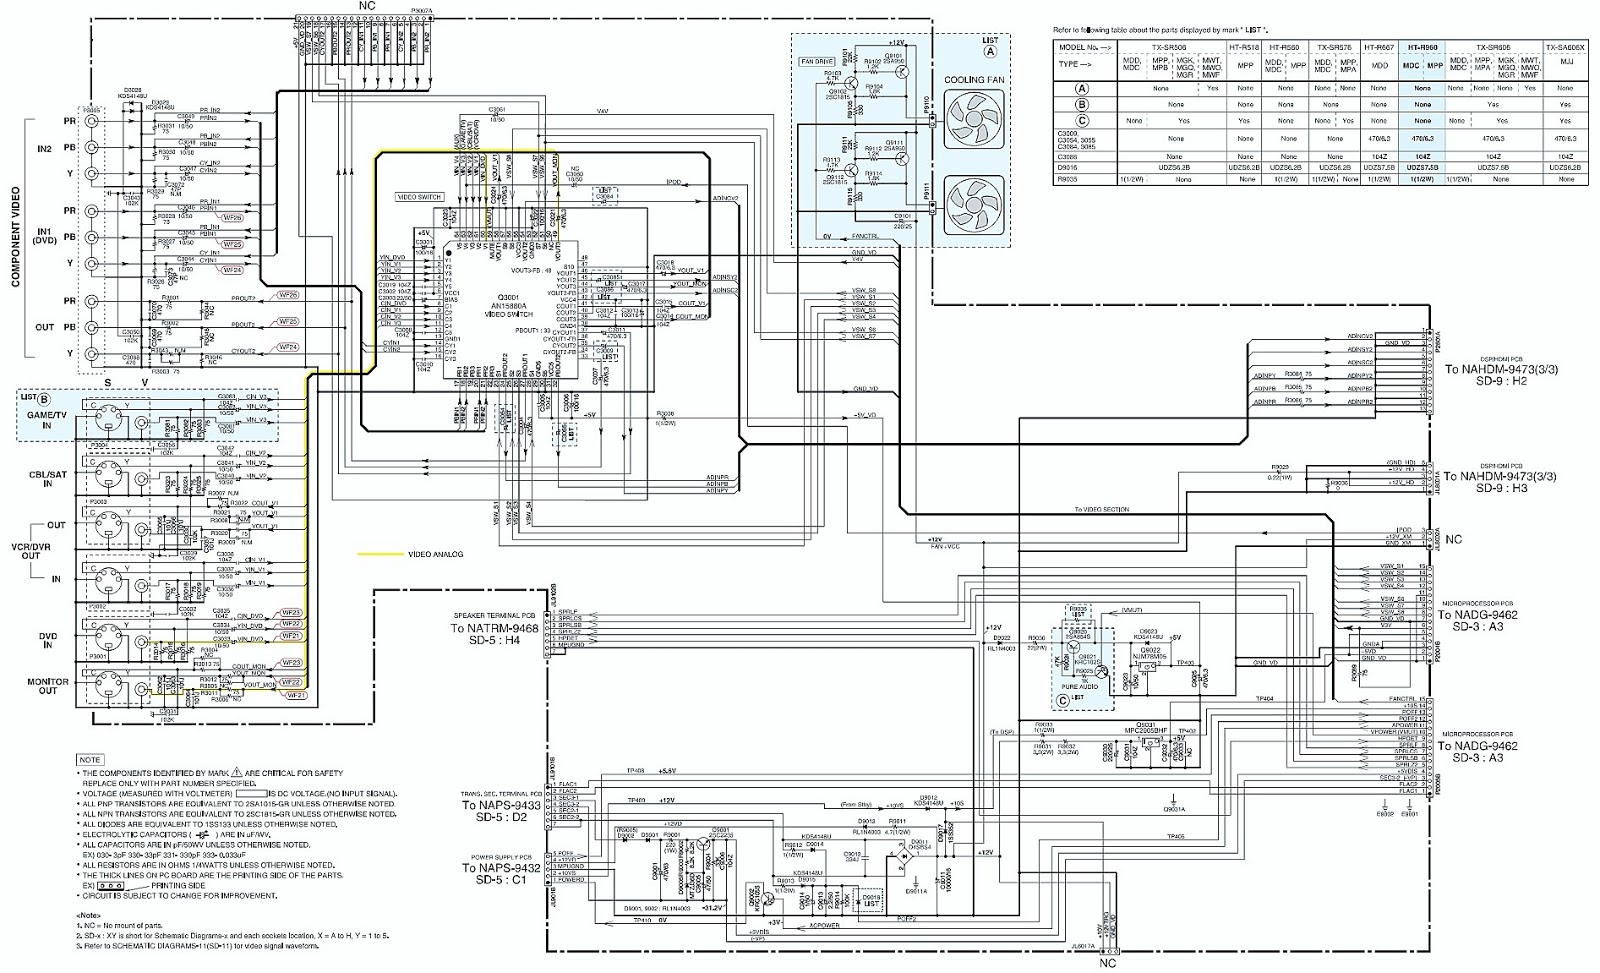 Onkyo Ht R960 7 1 Channel Htr Circuit Diagram